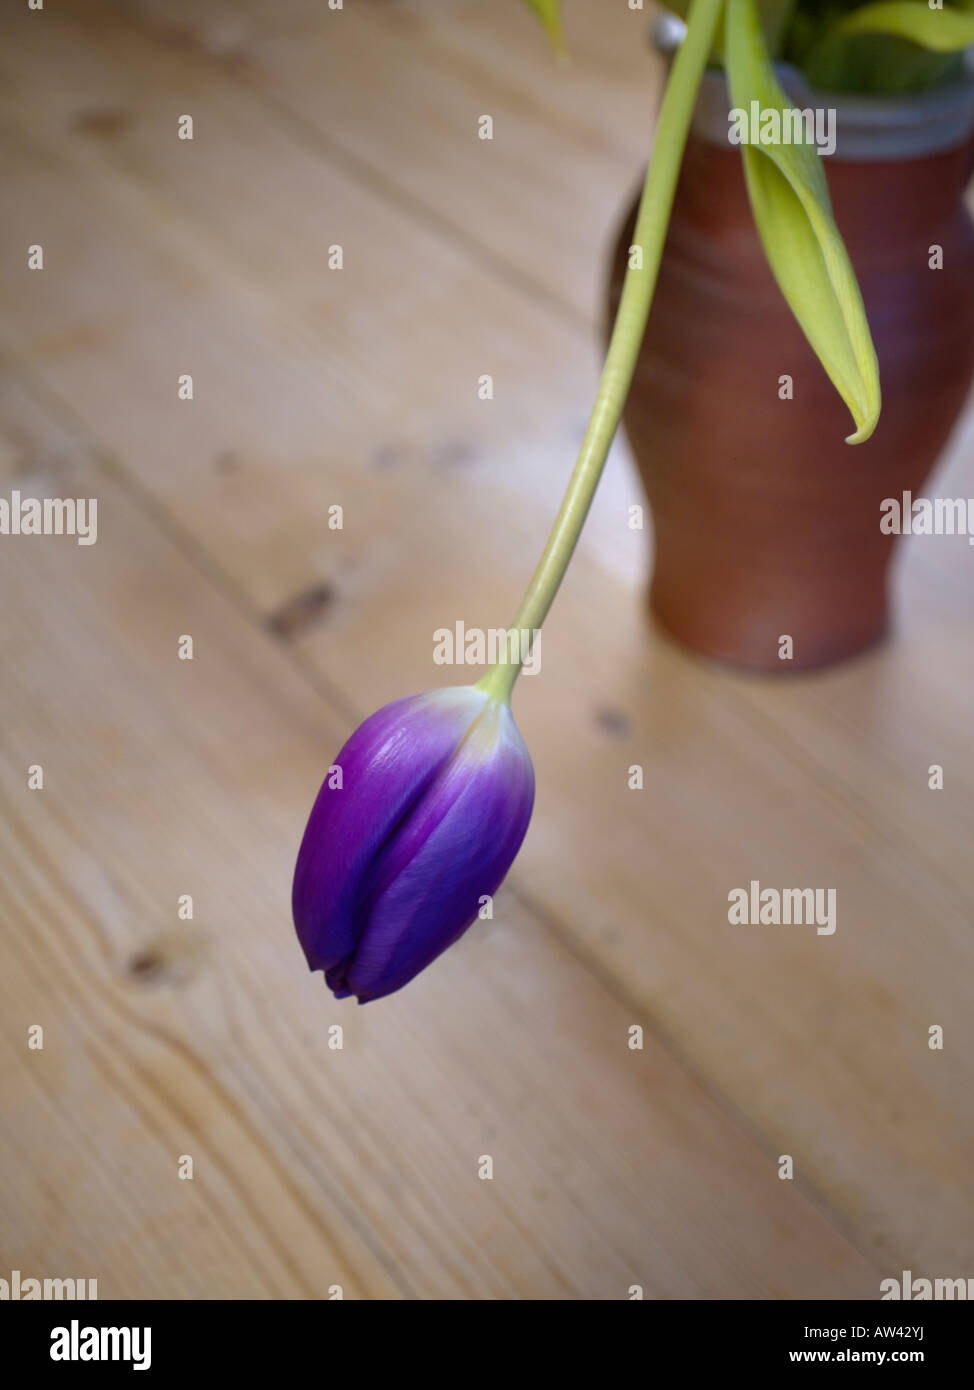 A Single Blue Tulip In A Vase Stock Photo, Royalty Free ... Single Blue Tulip